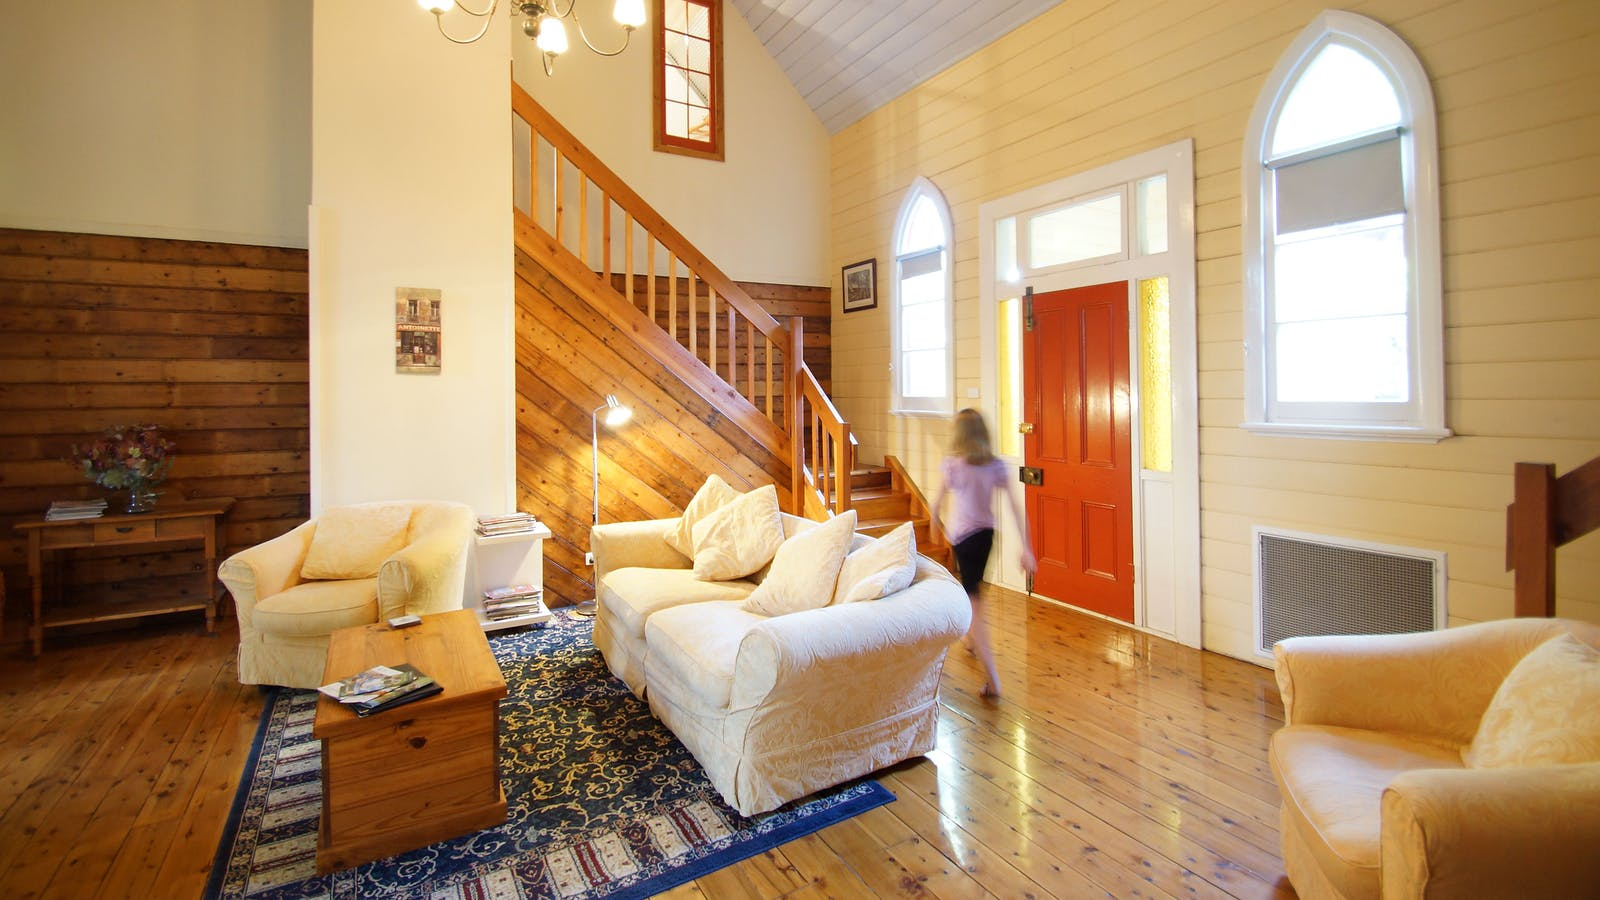 Comfortable lounges and high ceilings creates a relaxing home away from home